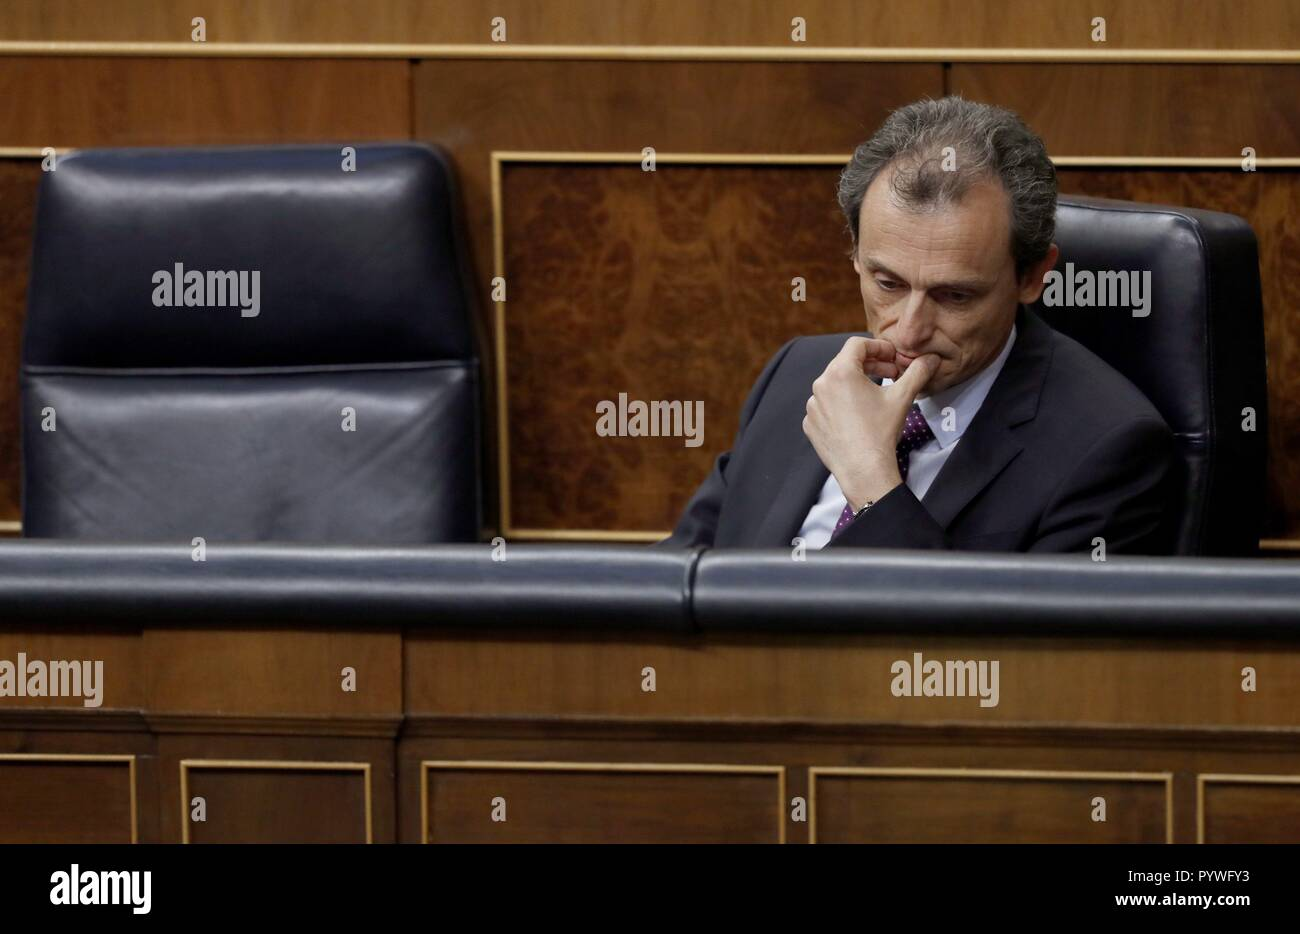 Madrid, Spain. 31st Oct, 2018. Spanish Minister of Science, Innovation and Universities, Pedro Duque, attends question time at Parliament in Madrid, Spain, 31 October 2018. Credit: Javier Lizon/EFE/Alamy Live News - Stock Image